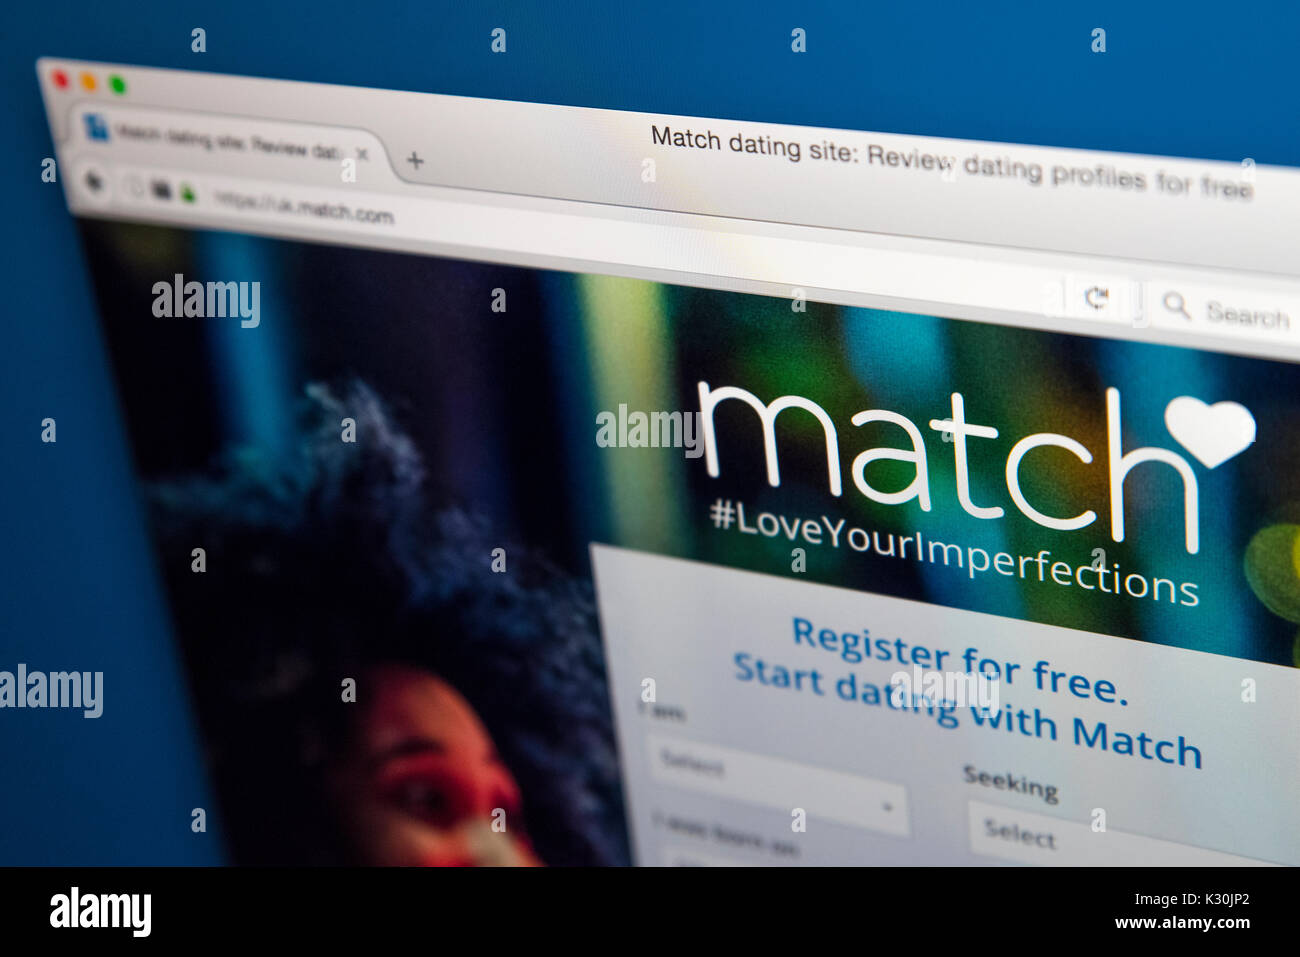 match online dating uk The 20 best dating sites and apps in the uk matchcom matchcom claims its site has led to more dates, marriages and relationships than any other.